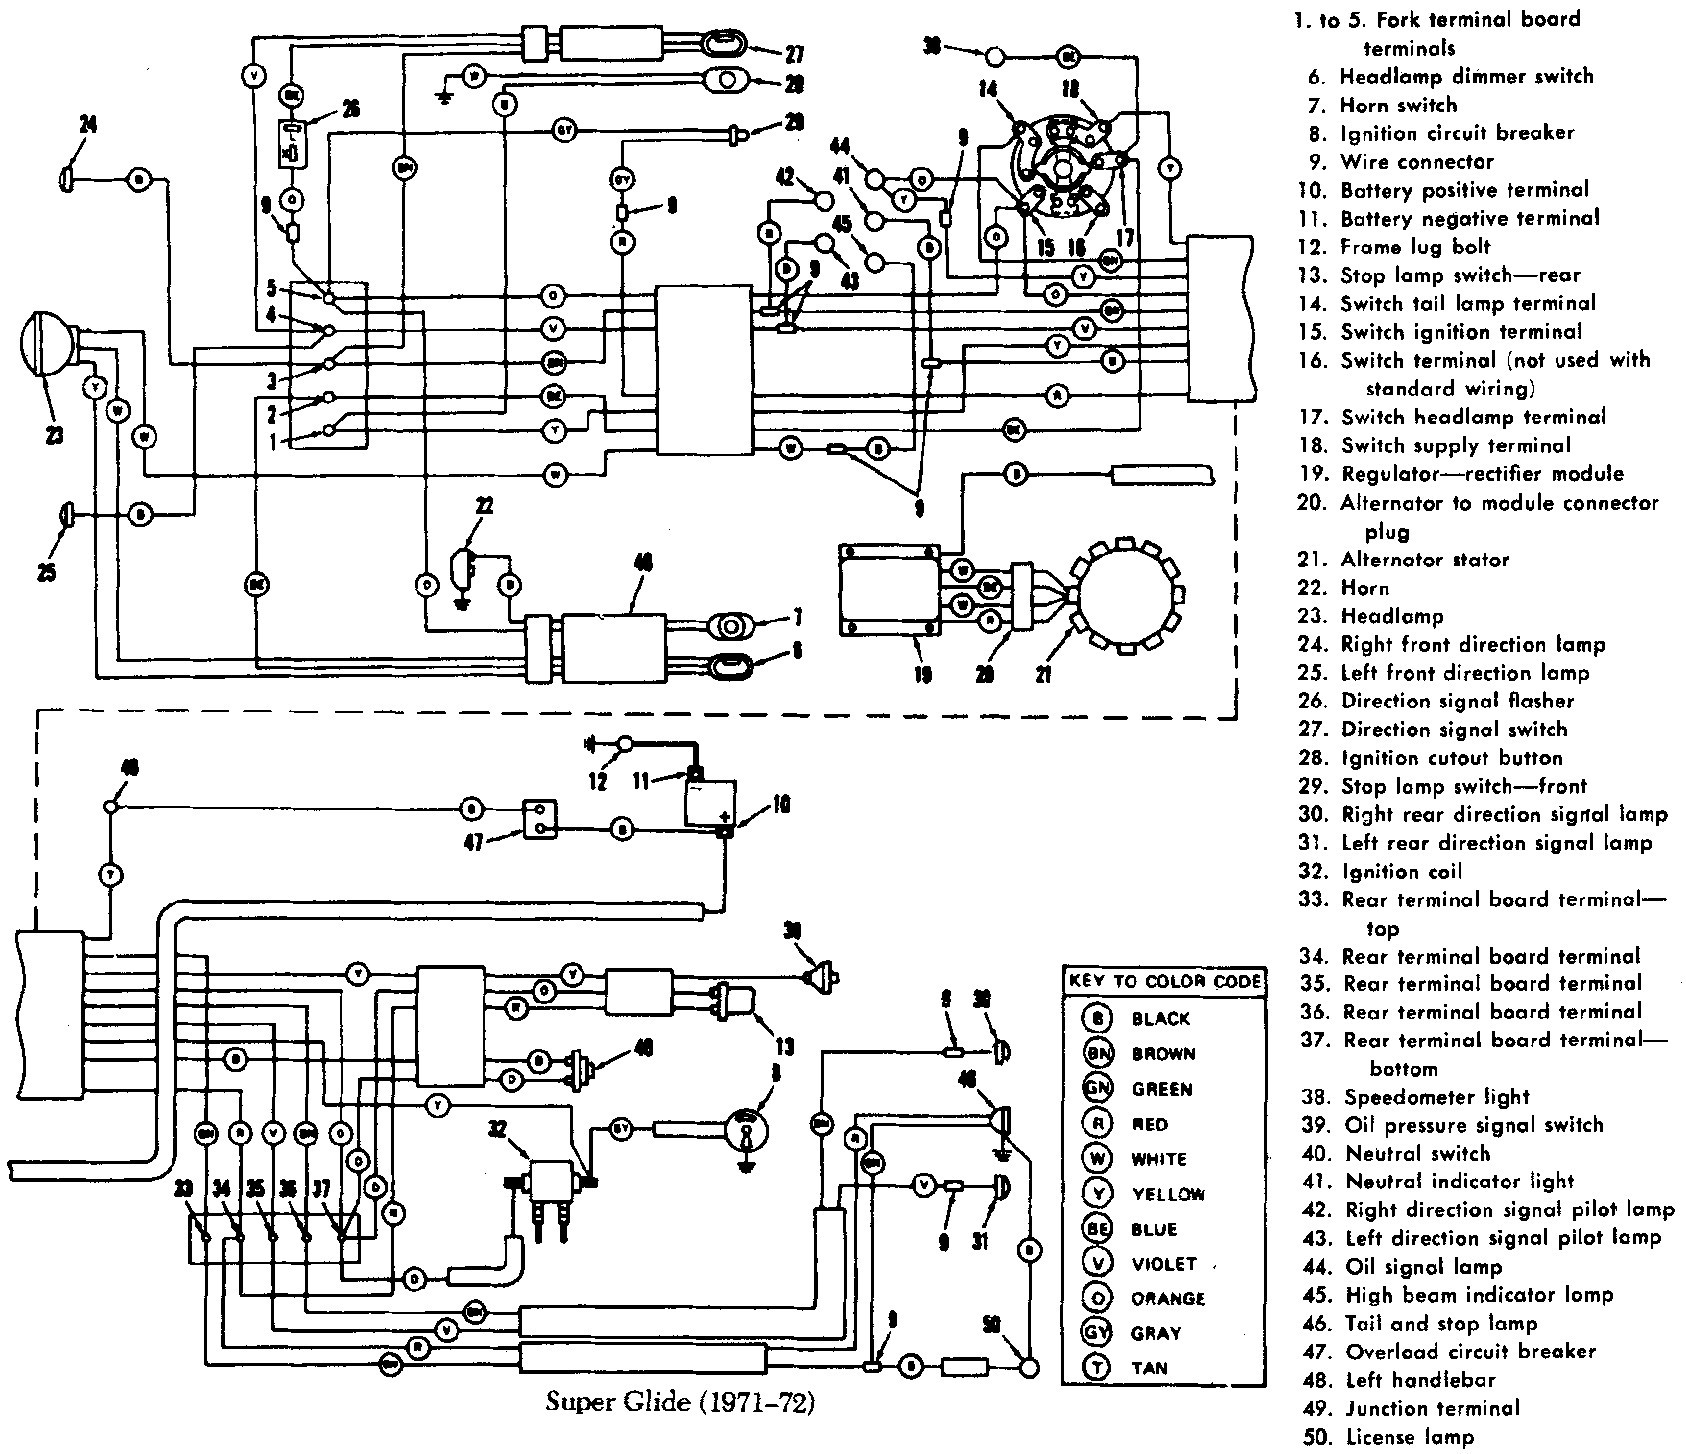 Harley Dyna Ignition Wiring Diagram - Wiring Diagrams Bib on harley-davidson exhaust diagram, harley-davidson wiring diagrams online, columbia par car wiring diagram, harley-davidson softail rocker, harley-davidson carburetor diagram, harley-davidson motorcycle diagrams, harley-davidson starter diagram, harley-davidson electrical diagram, harley-davidson clutch diagram, john deere ignition switch diagram, harley wiring harness diagram, harley sportster wiring diagram, simple harley wiring diagram, harley-davidson transmission diagram, circuit breaker wiring diagram, harley-davidson motor diagram, sportster chopper wiring diagram, harley-davidson shovelhead wiring-diagram, harley-davidson charging system diagram, harley-davidson engine diagram,